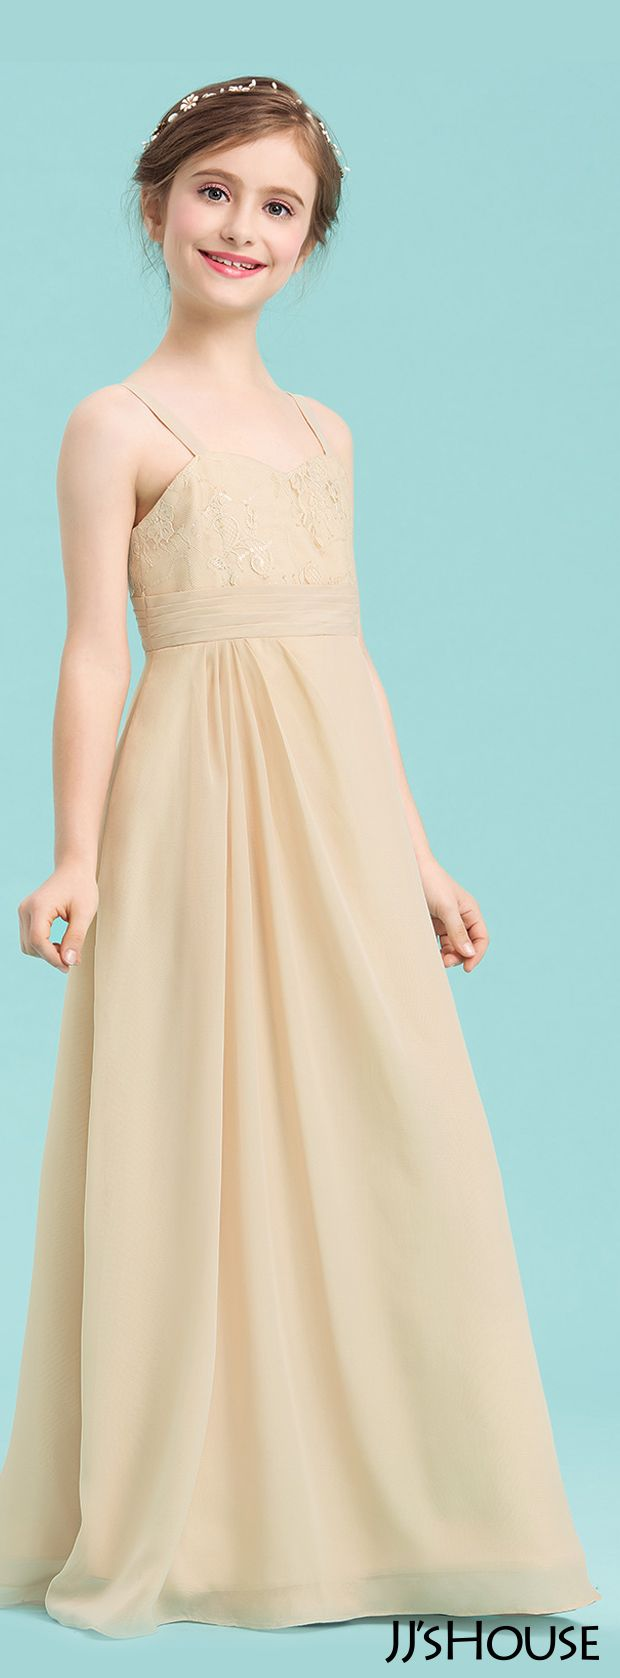 Outstanding Cheap Jr Bridesmaid Dresses Vignette - All Wedding ...